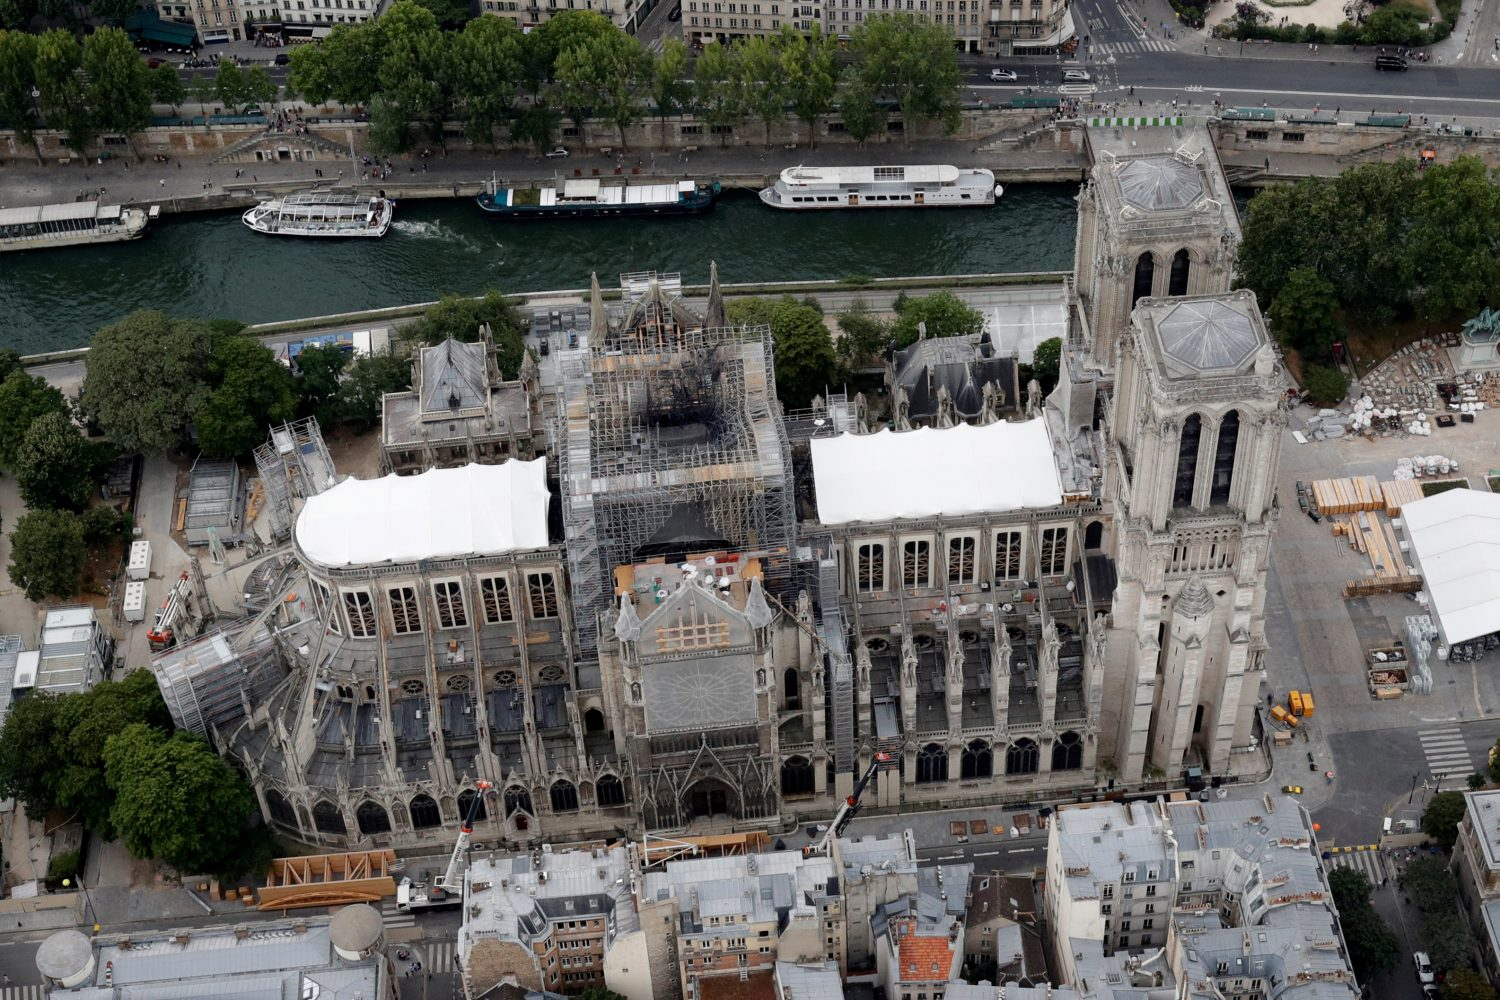 FILE PHOTO: A view shows the damaged roof of Notre-Dame de Paris during restoration work, three months after a fire that devastated the cathedral in Paris, France, July 14, 2019. REUTERS/Philippe Wojazer/File Photo